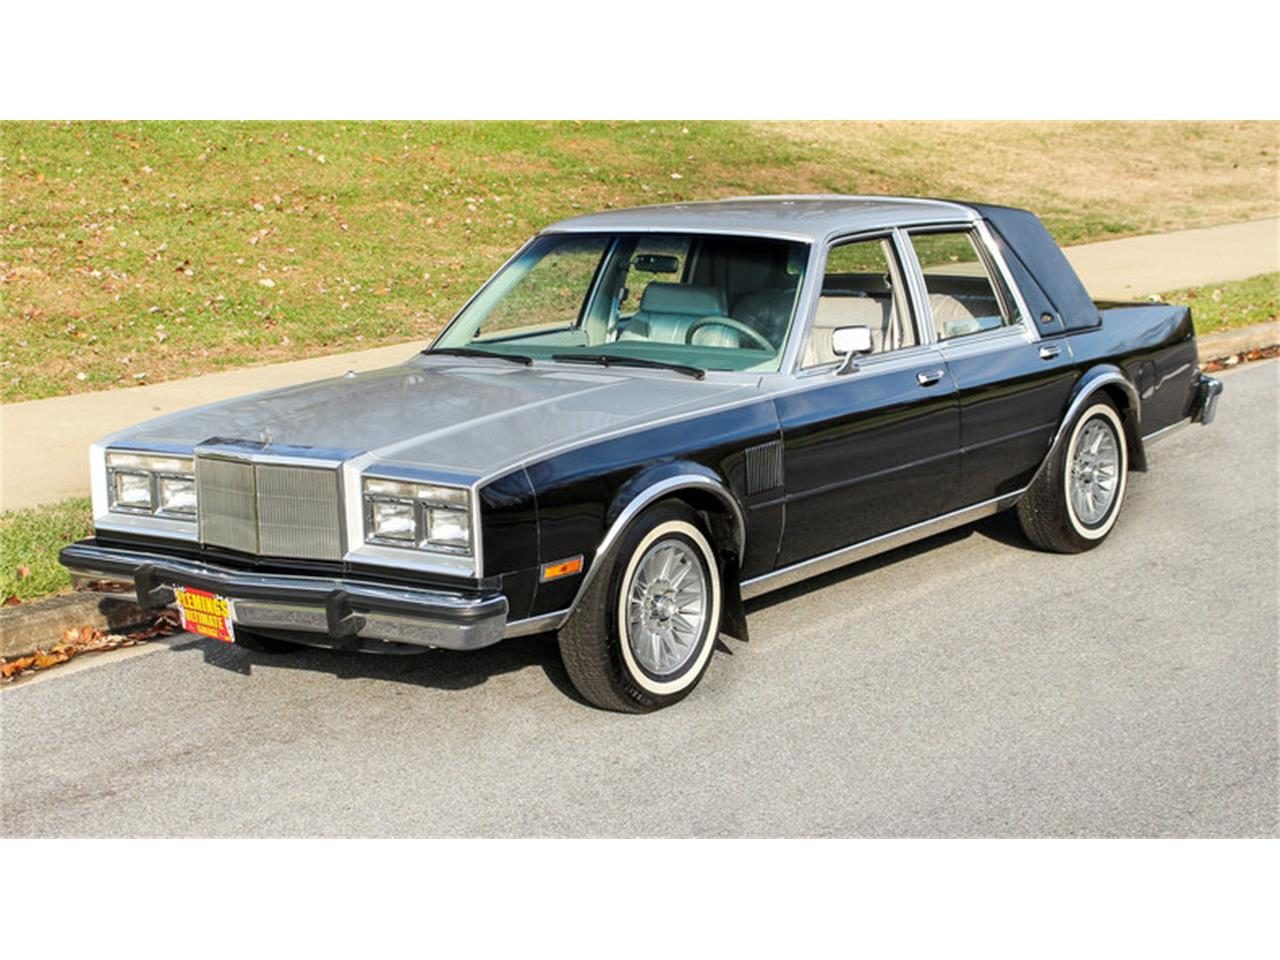 14226366-1985-chrysler-fifth-avenue-std.jpg